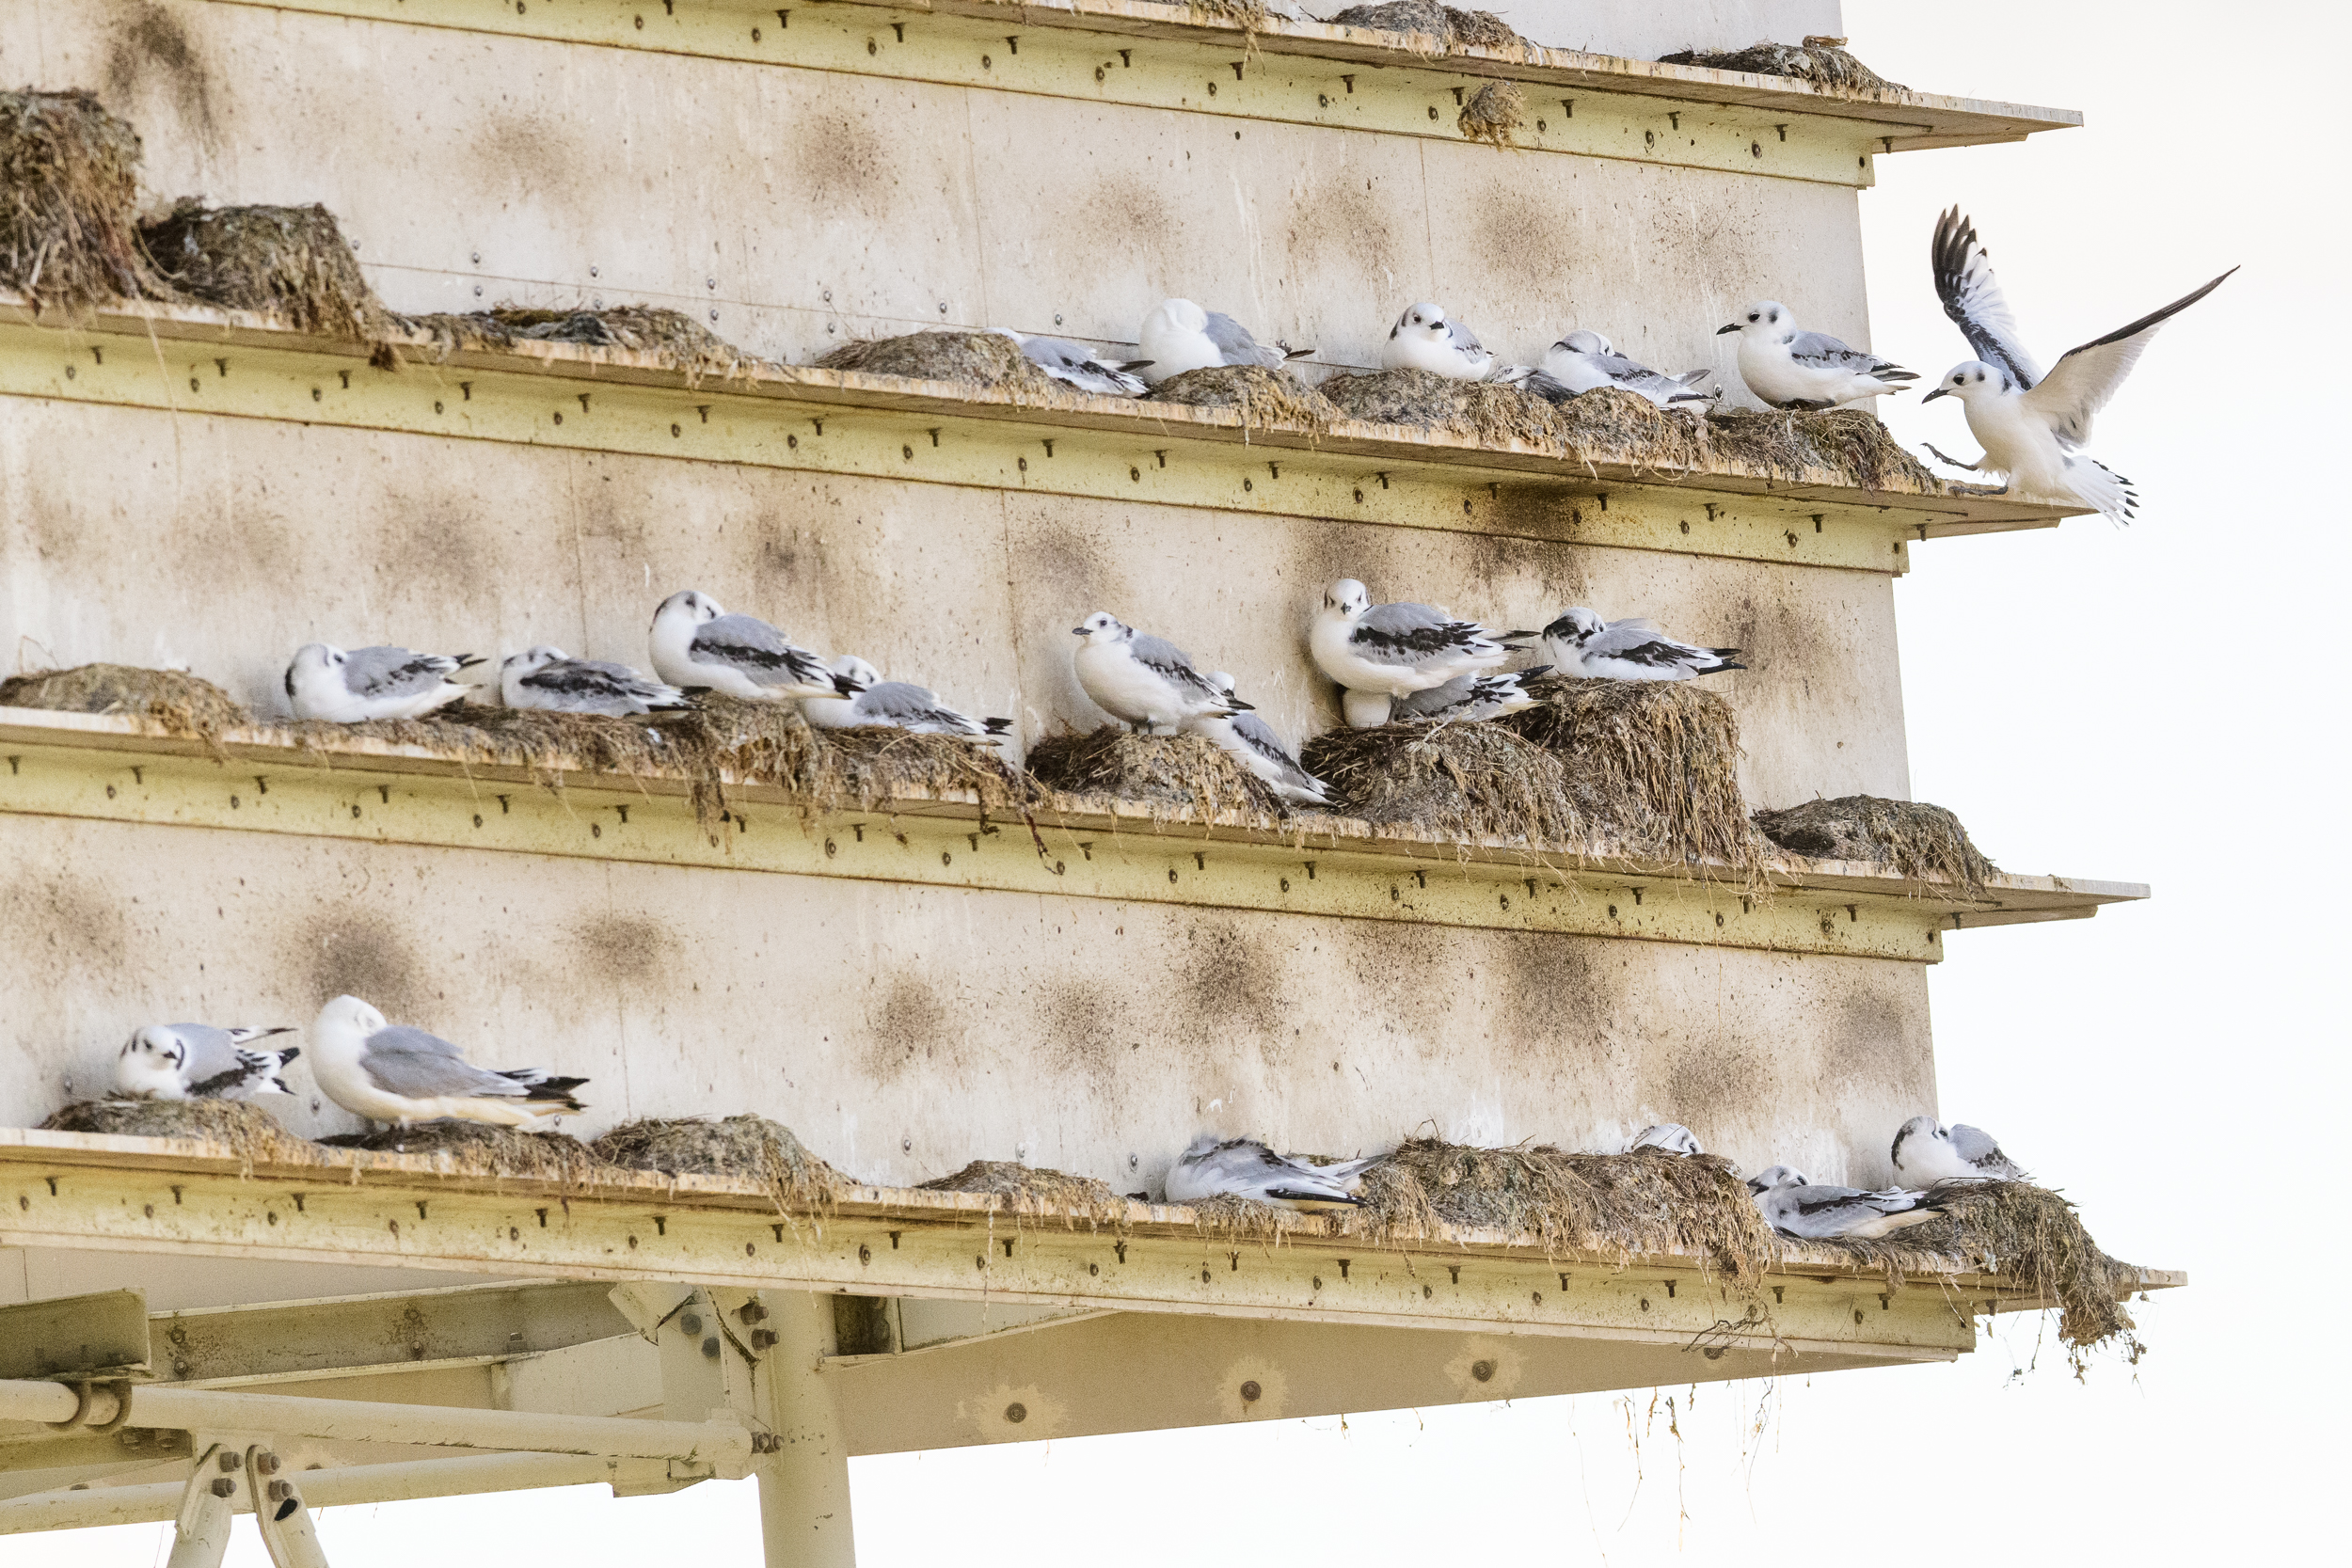 Black-legged kittiwake (Rissa tridactyla) juveniles on an artificial nesting tower built in Gateshead, Newcastle, UK. July